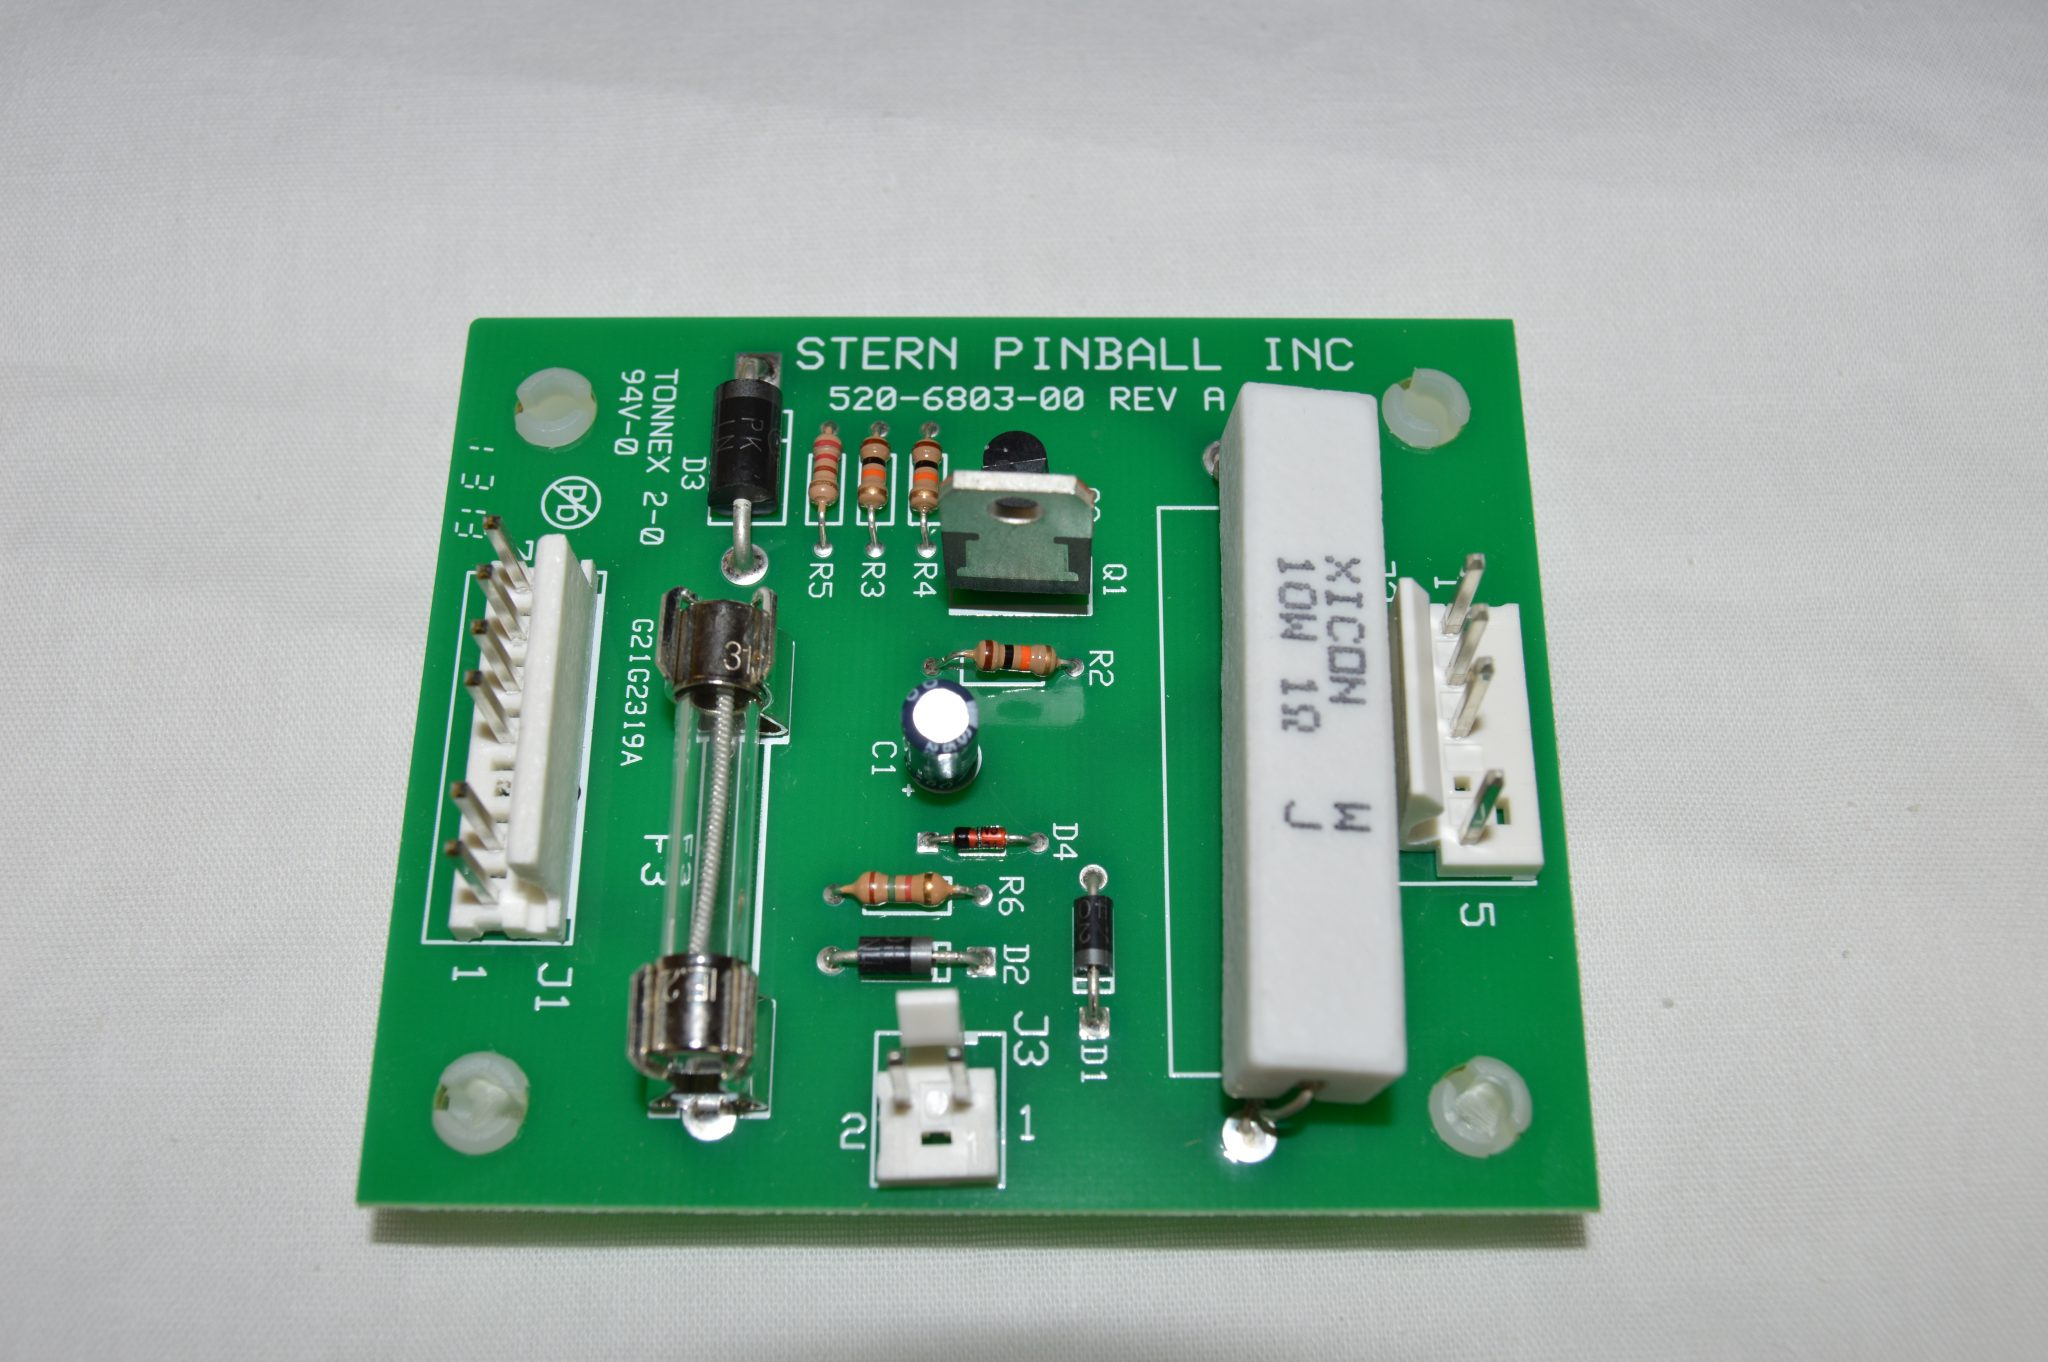 Shaker Motor Board Data East, Sega, Stern Ver. 2 520-6803-00